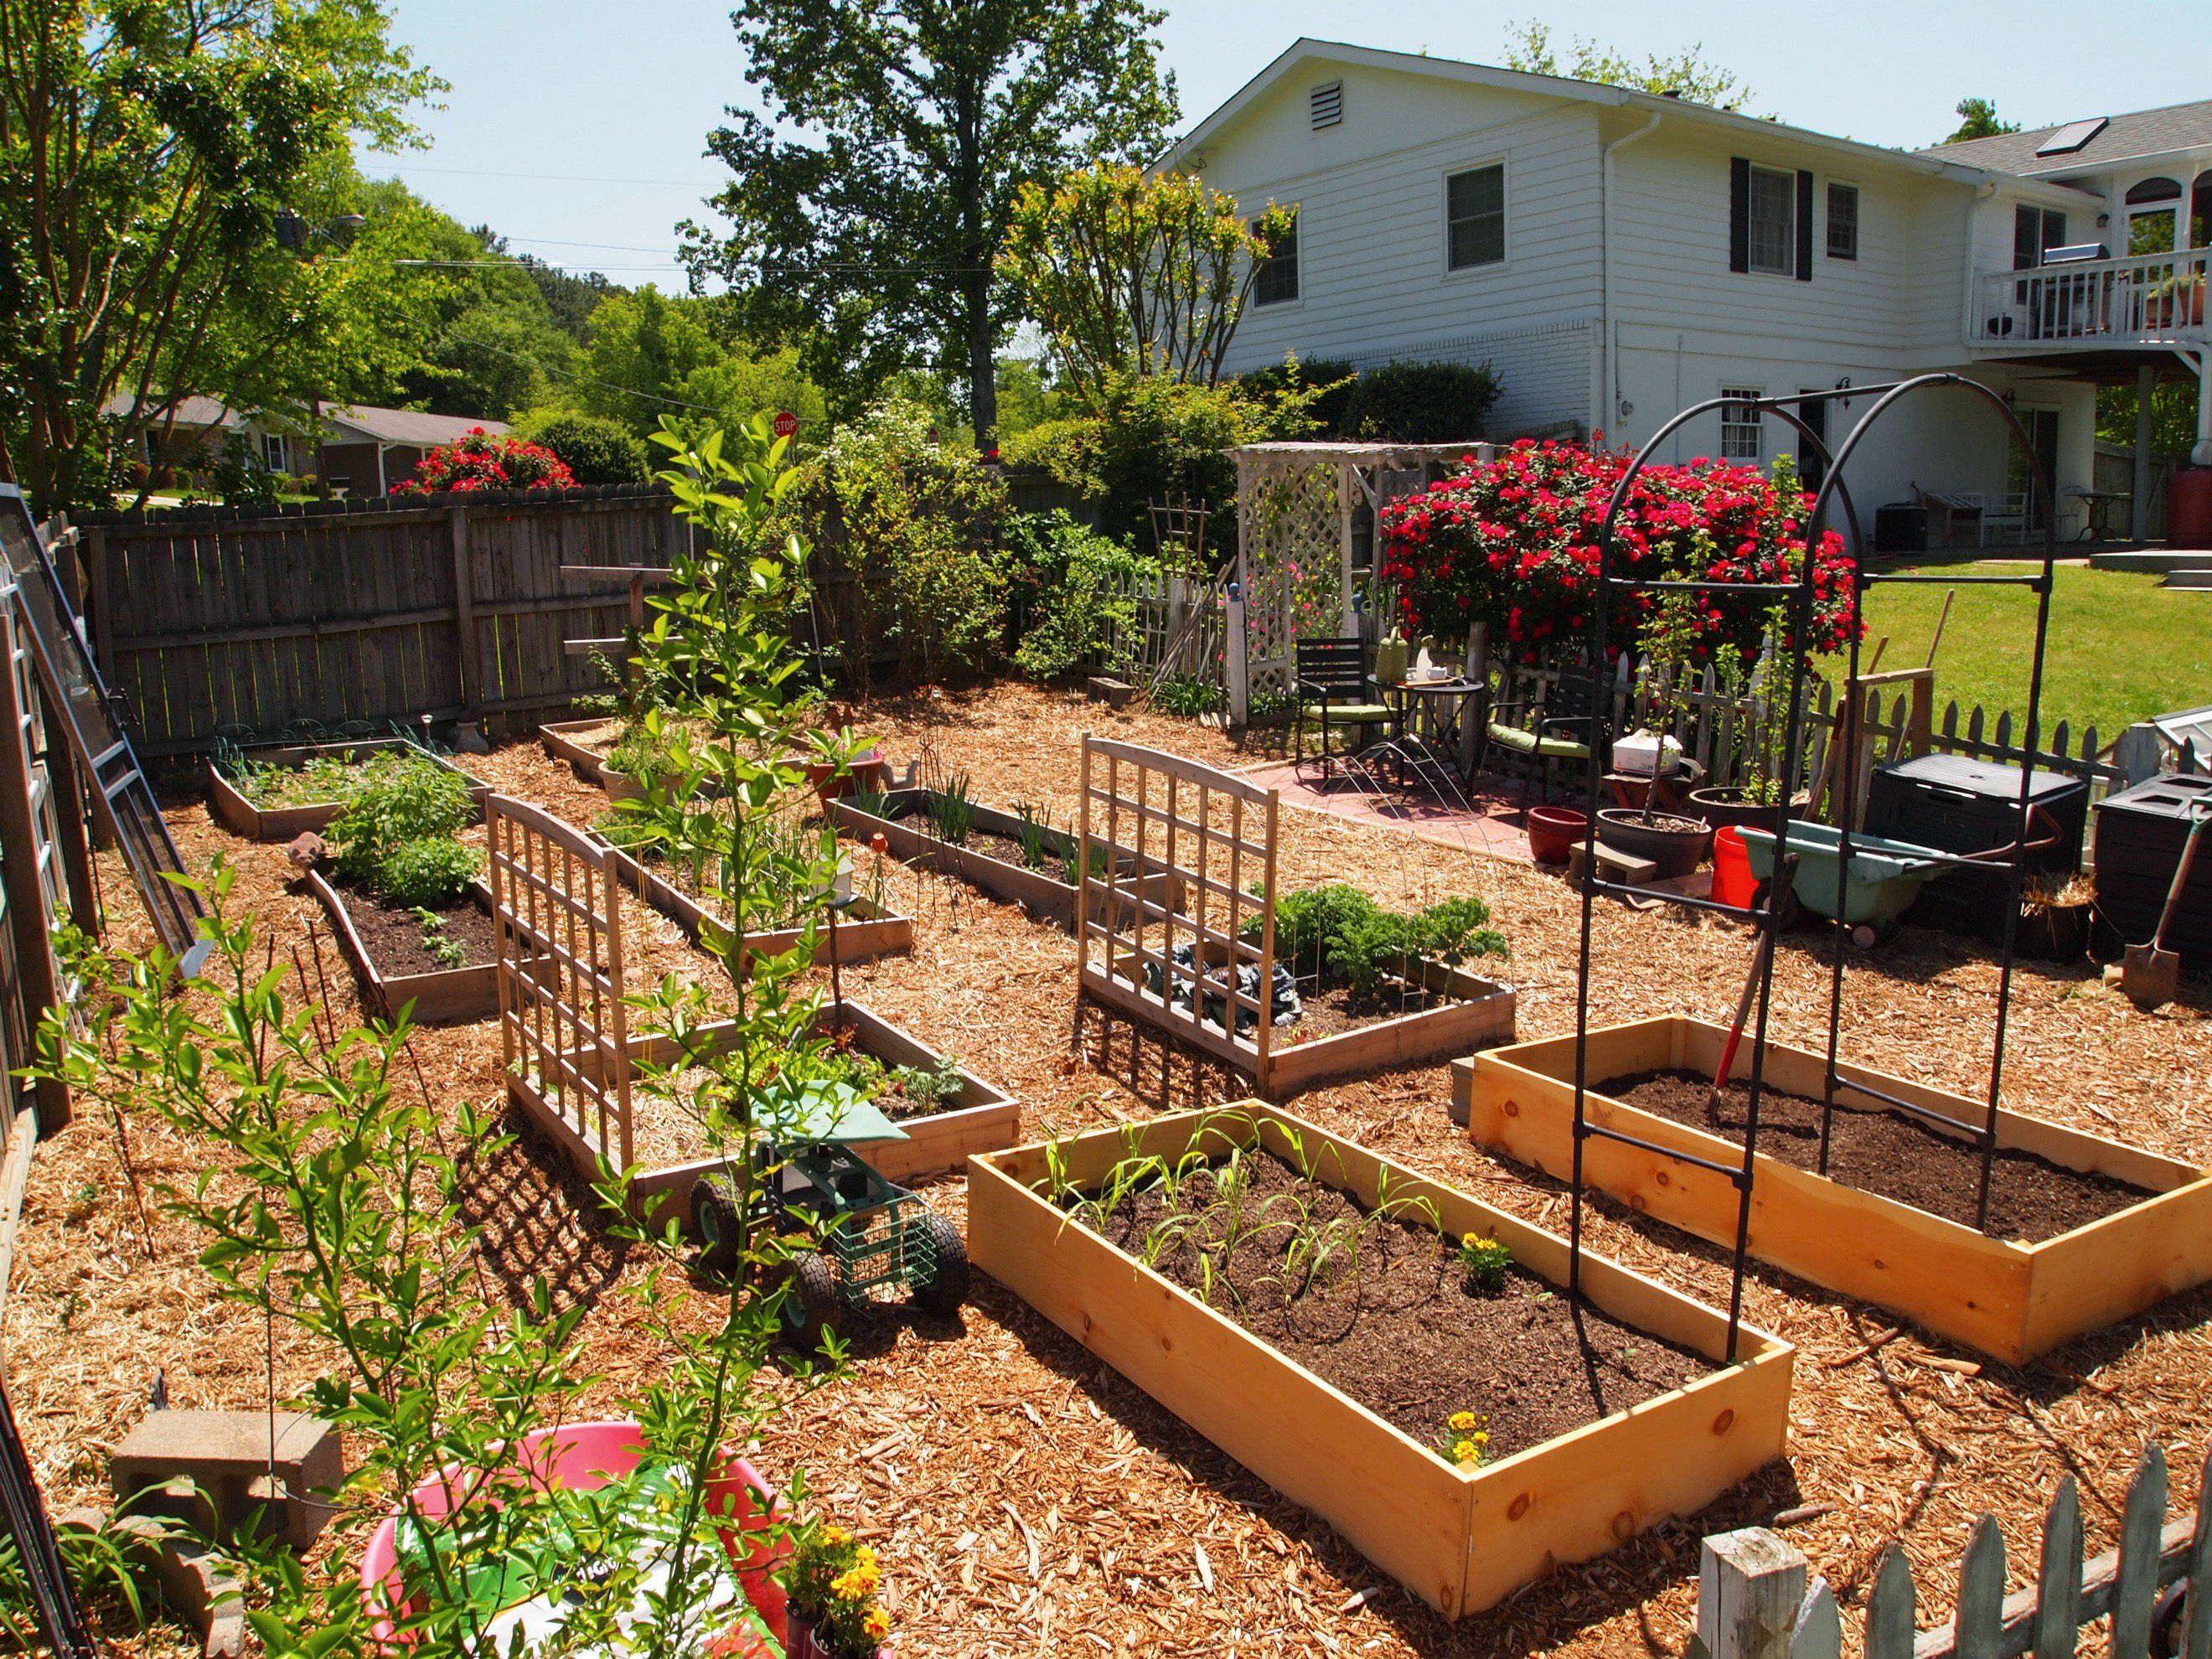 Backyard food garden ideas - What Will My Garden Grow Vegetable Garden Layoutsbackyard